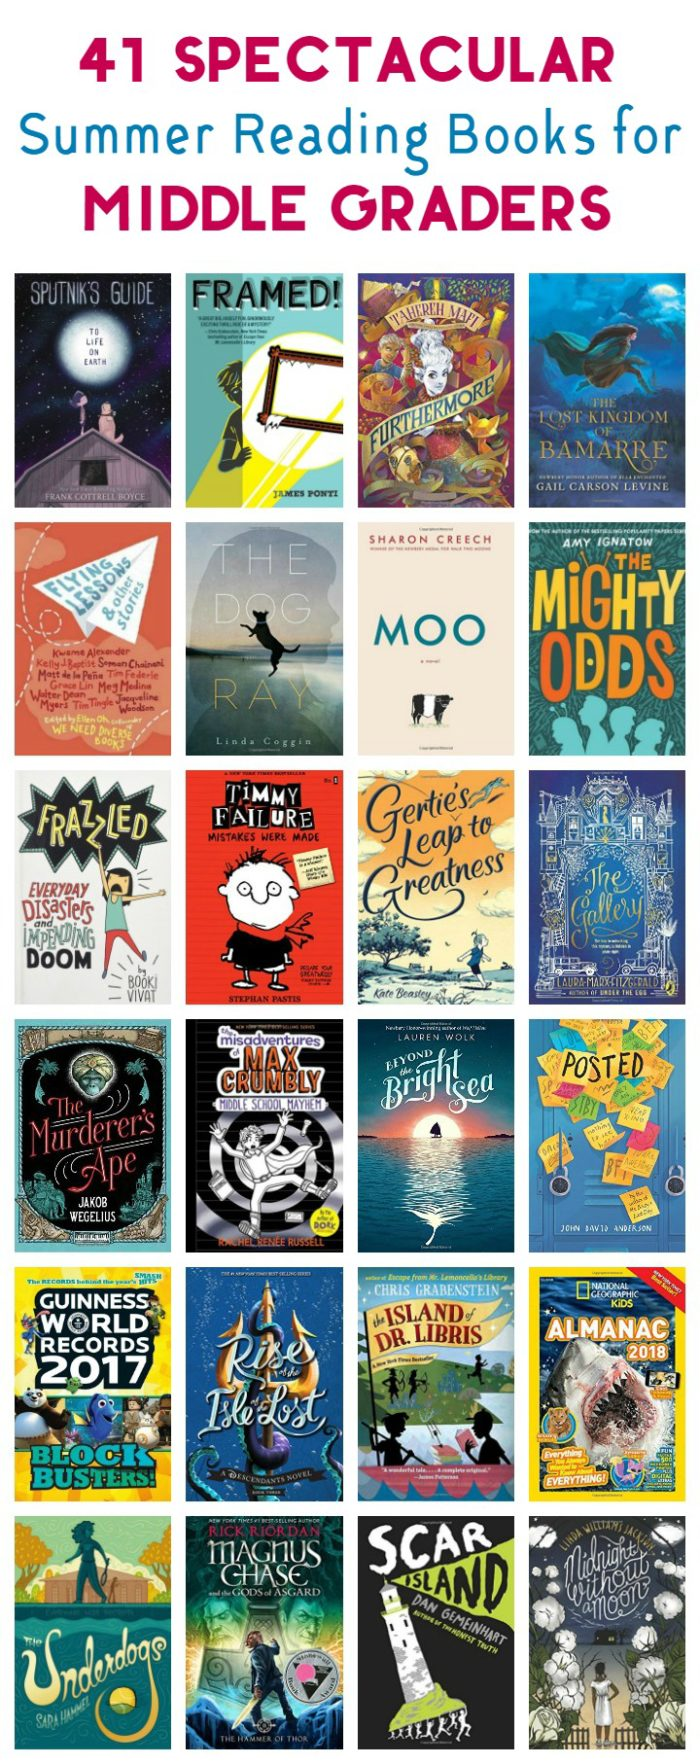 Looking for perfect book ideas for your tweens? Check out my 2017 middle grade summer reading list with 41 great ideas across every genre!